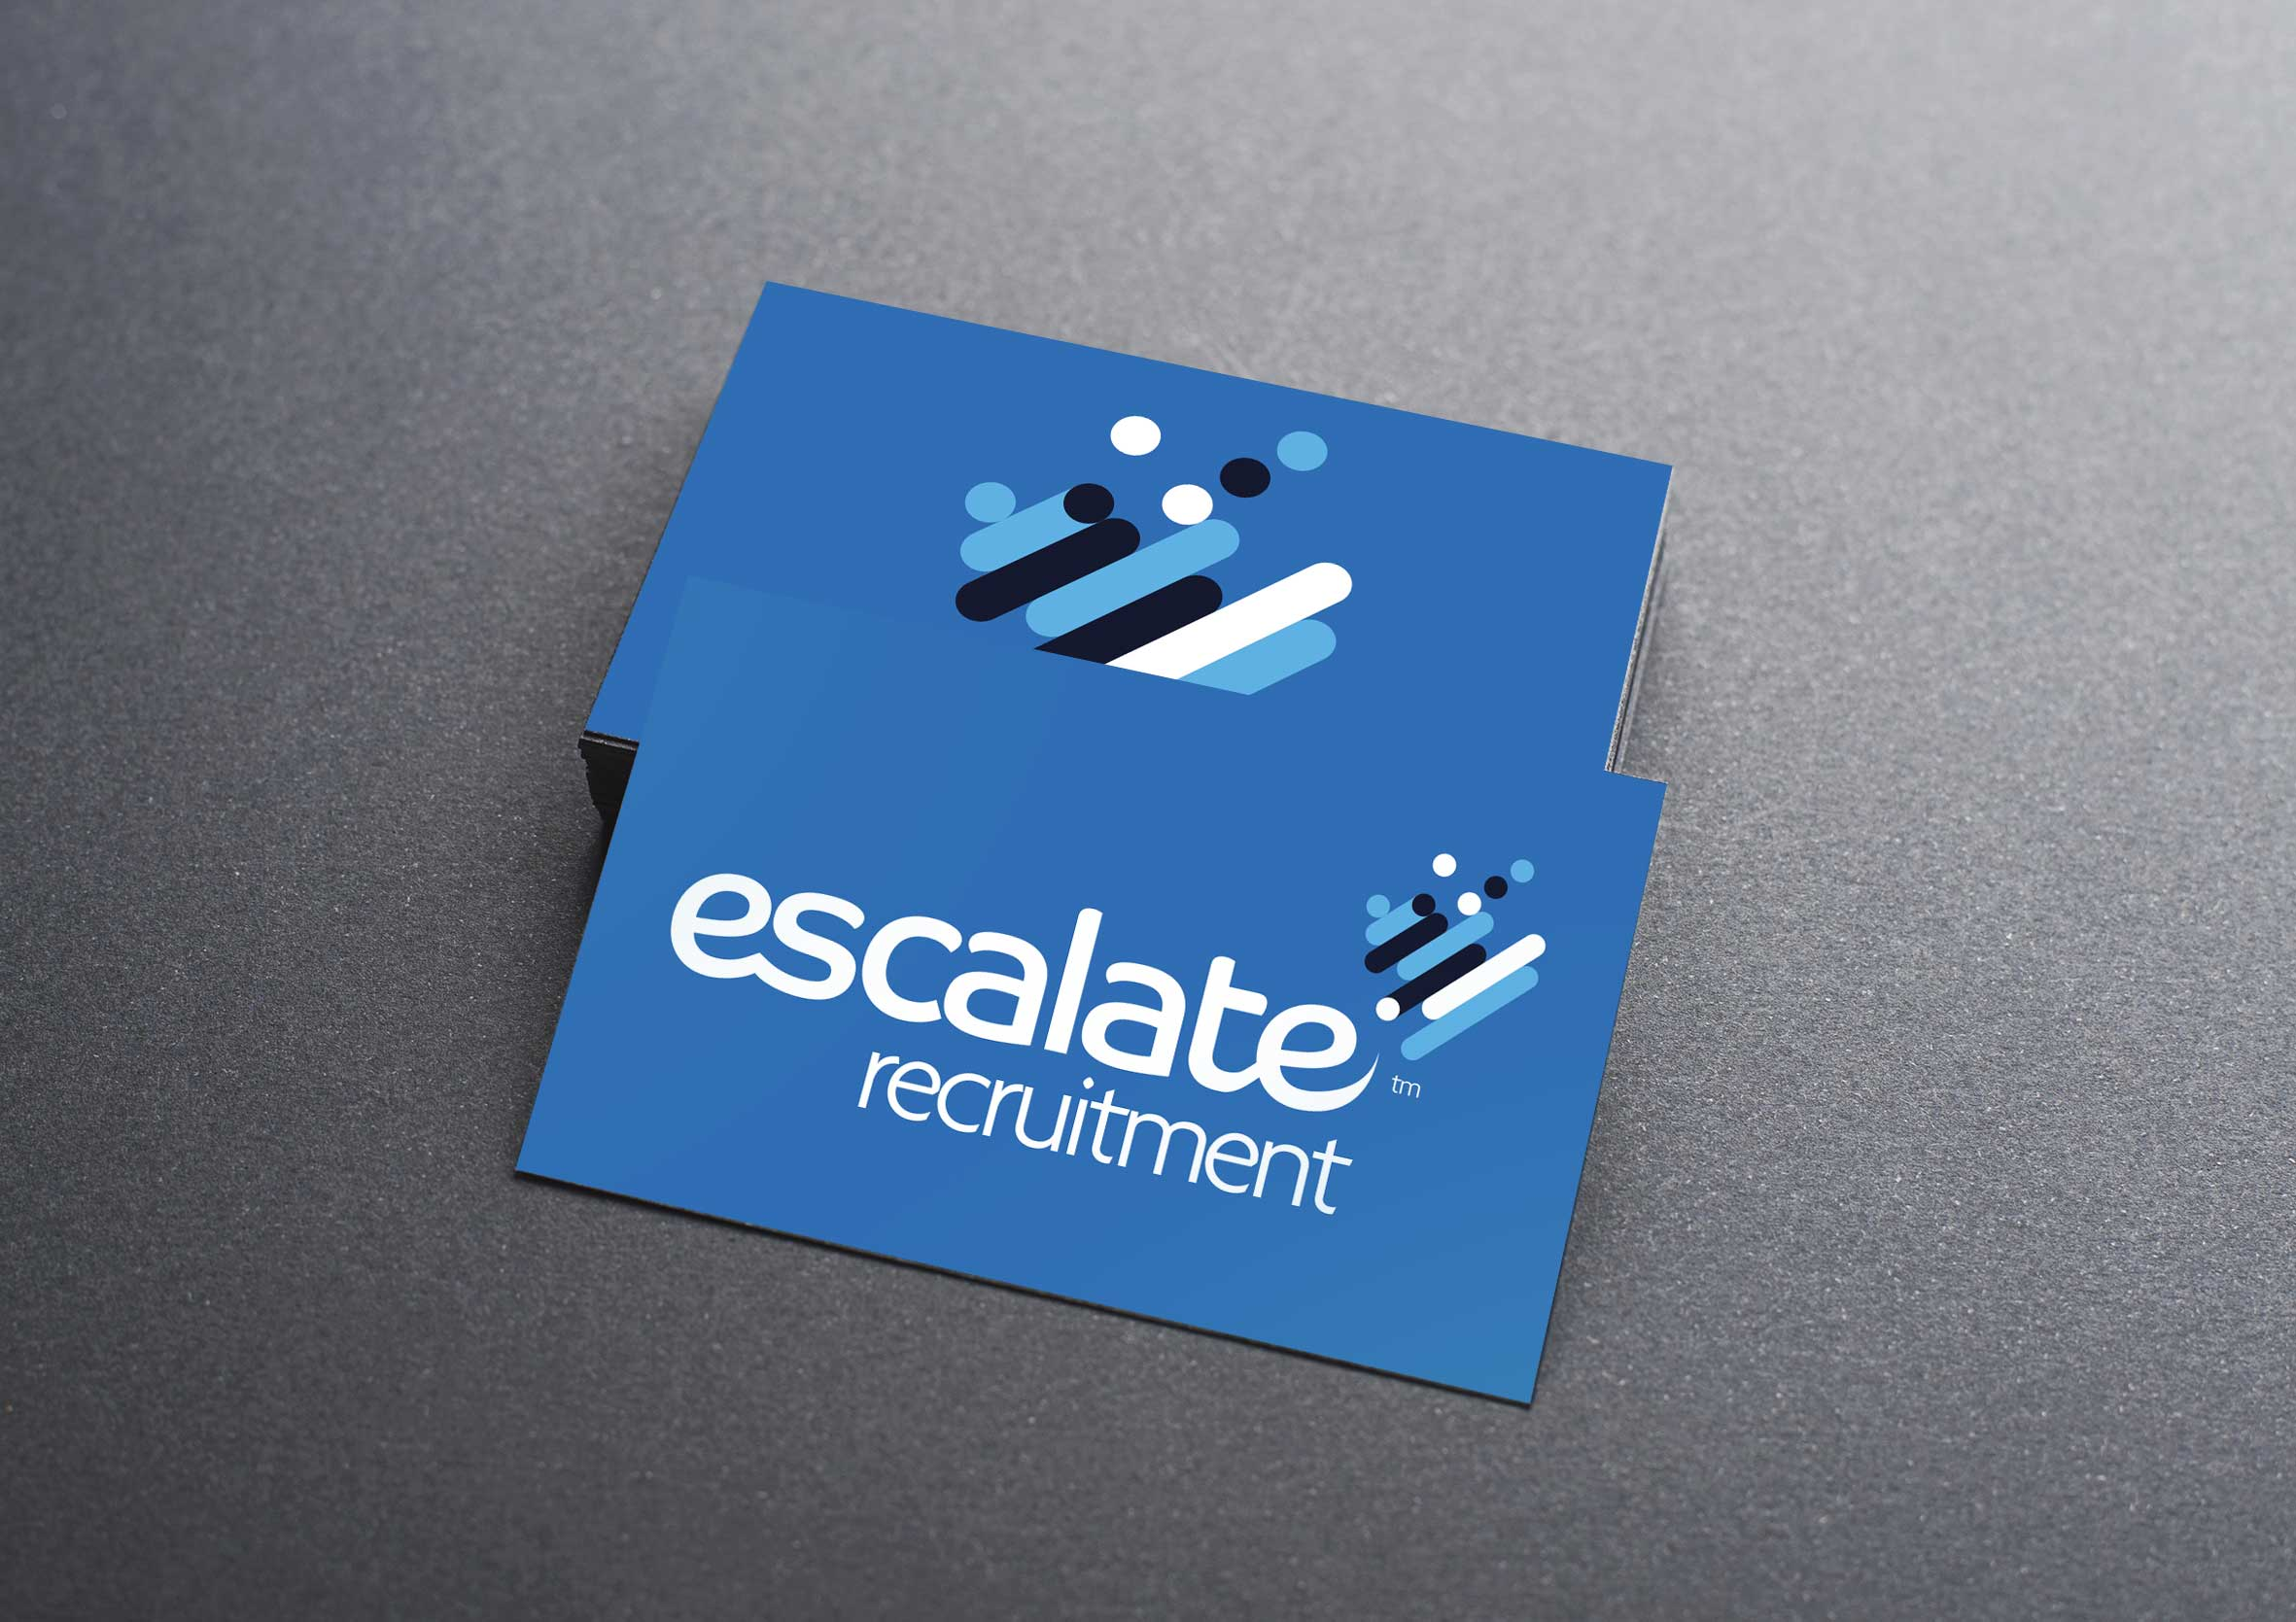 Webawaba-Escalate-Recruitment-Logo.jpg